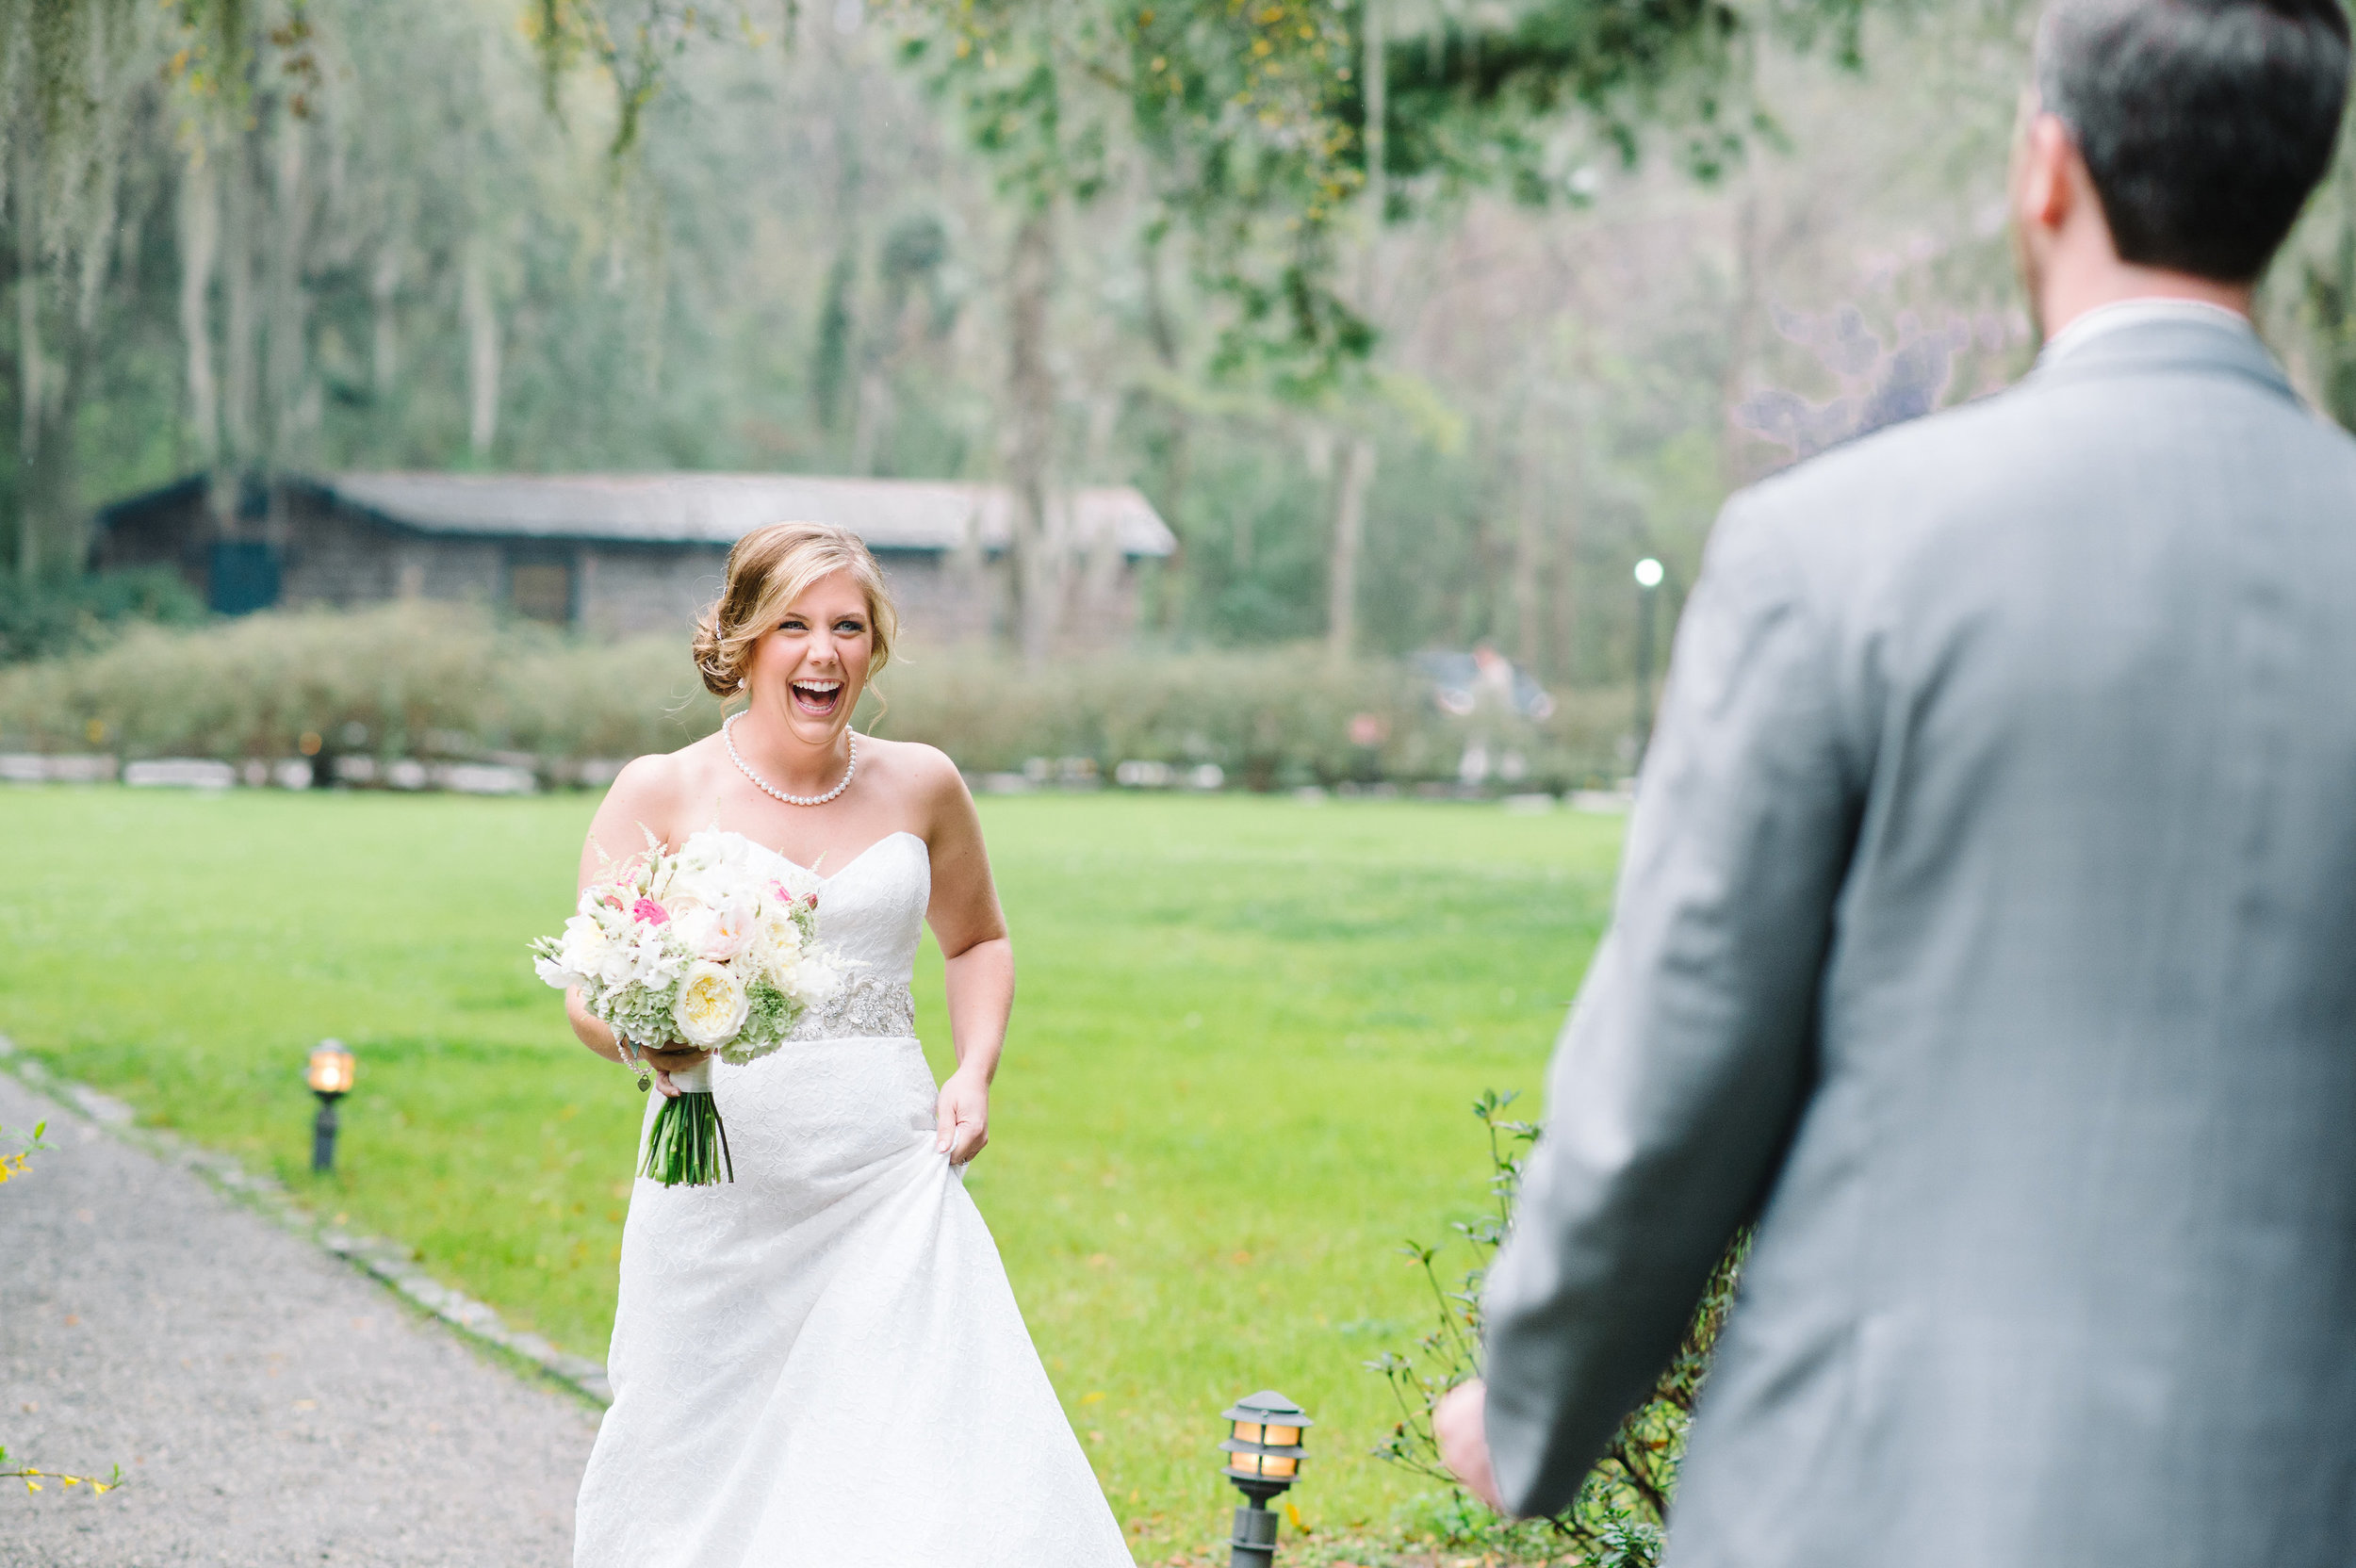 Kimberly+Clinton-MagnoliaPlantationWedding-98 - Copy.jpg